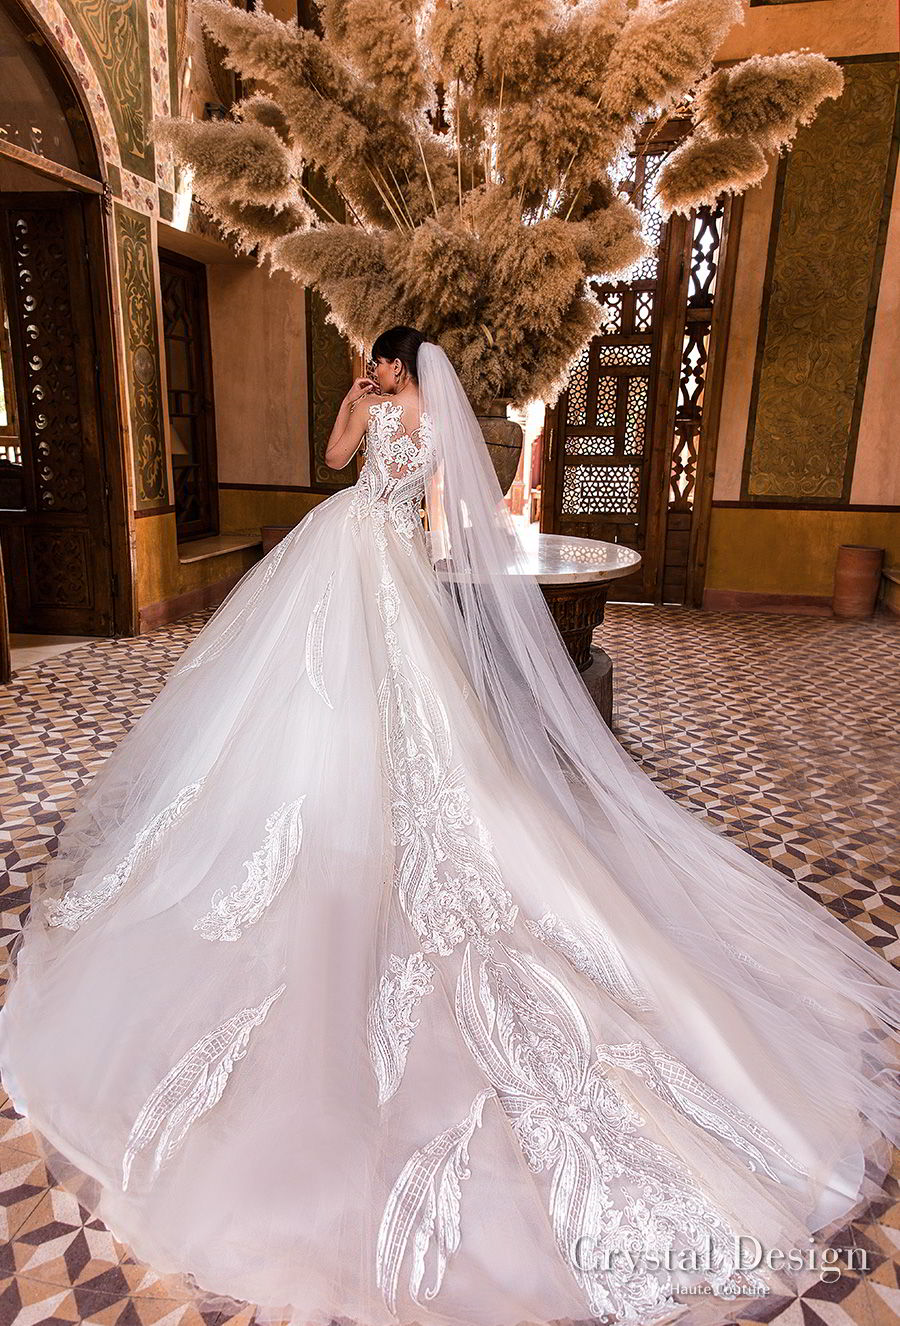 crystal design 2018 off the shoulder scoop neck heavily embellished bodice princess ball gown wedding dress lace back royal train (sushine) bv